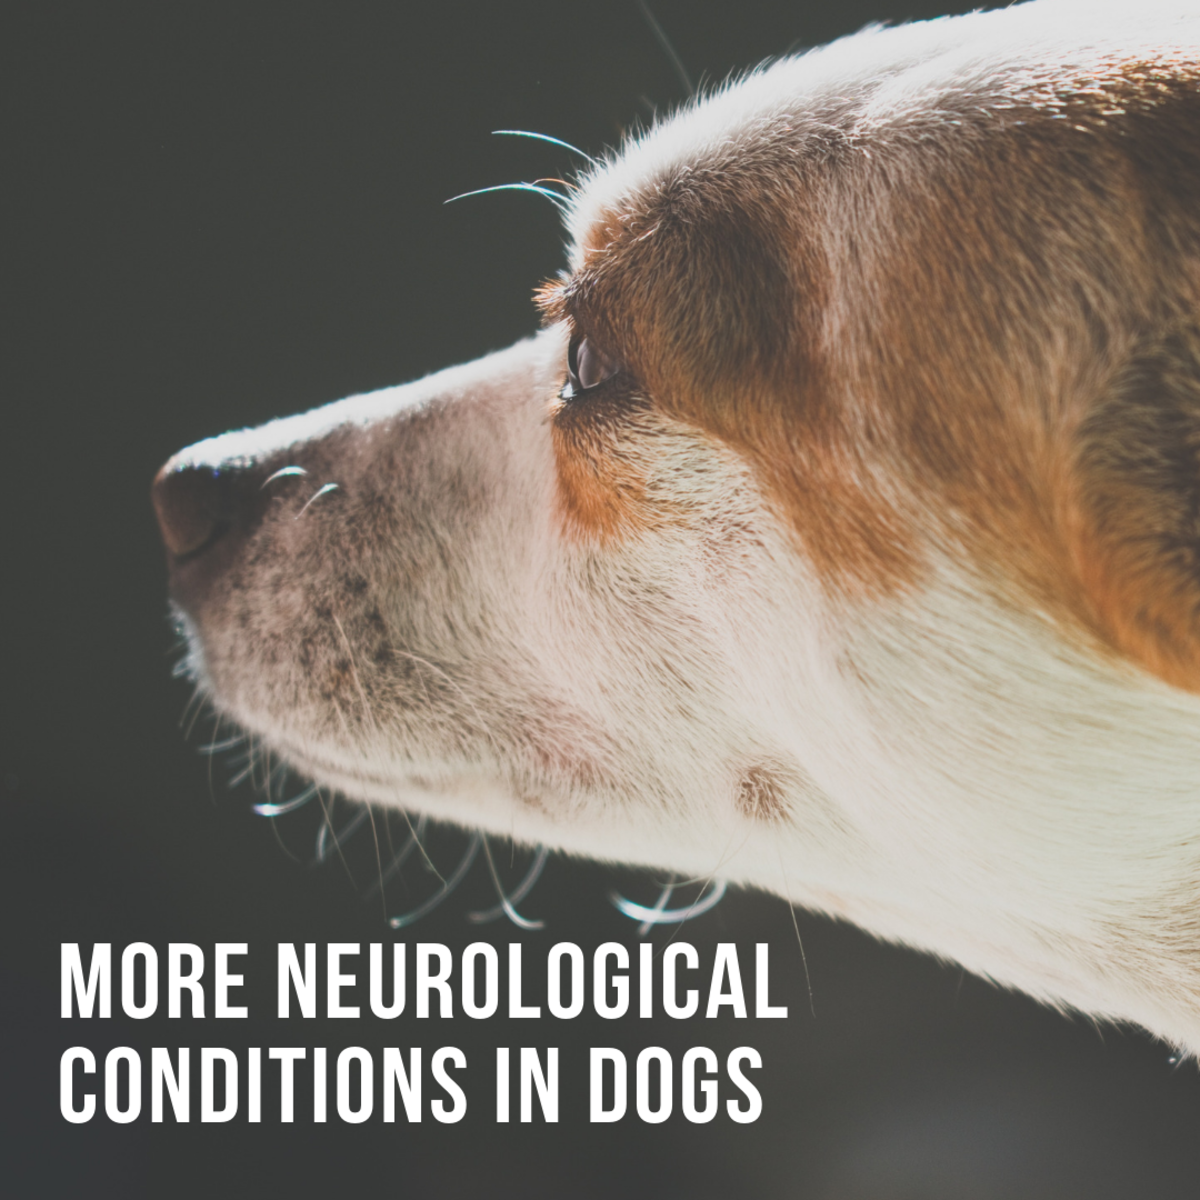 More Neurological Conditions in Dogs